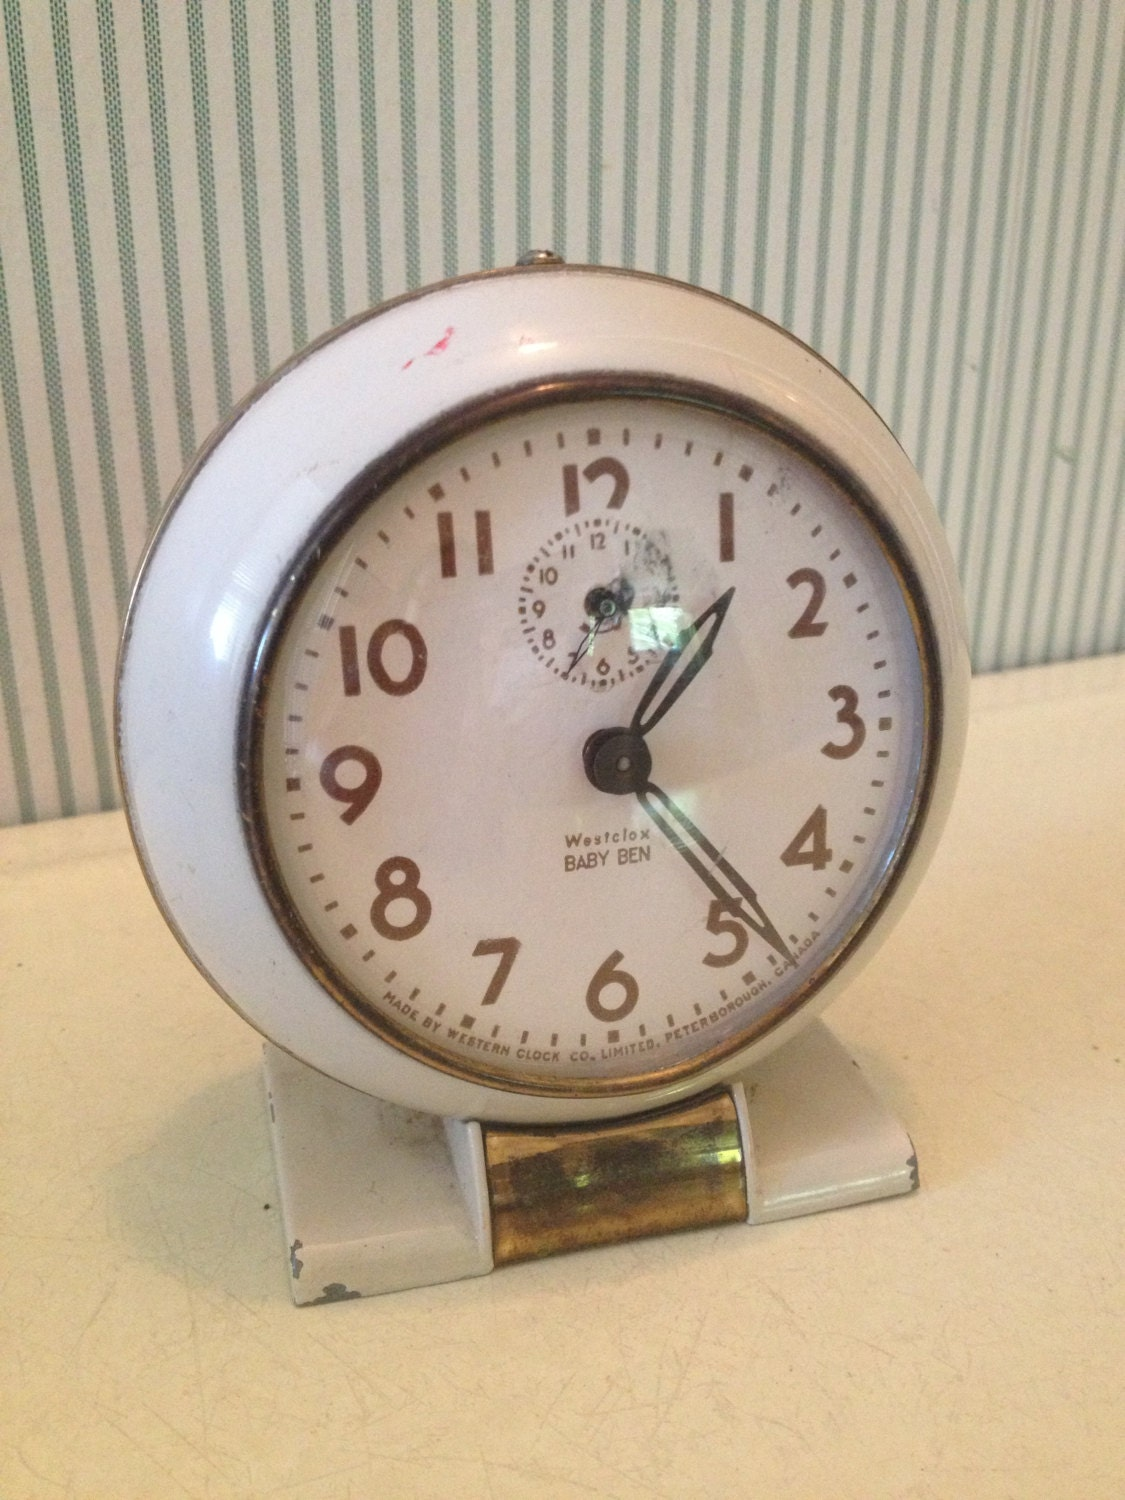 Vintage Westclox Baby Ben Wind Up Alarm Clock